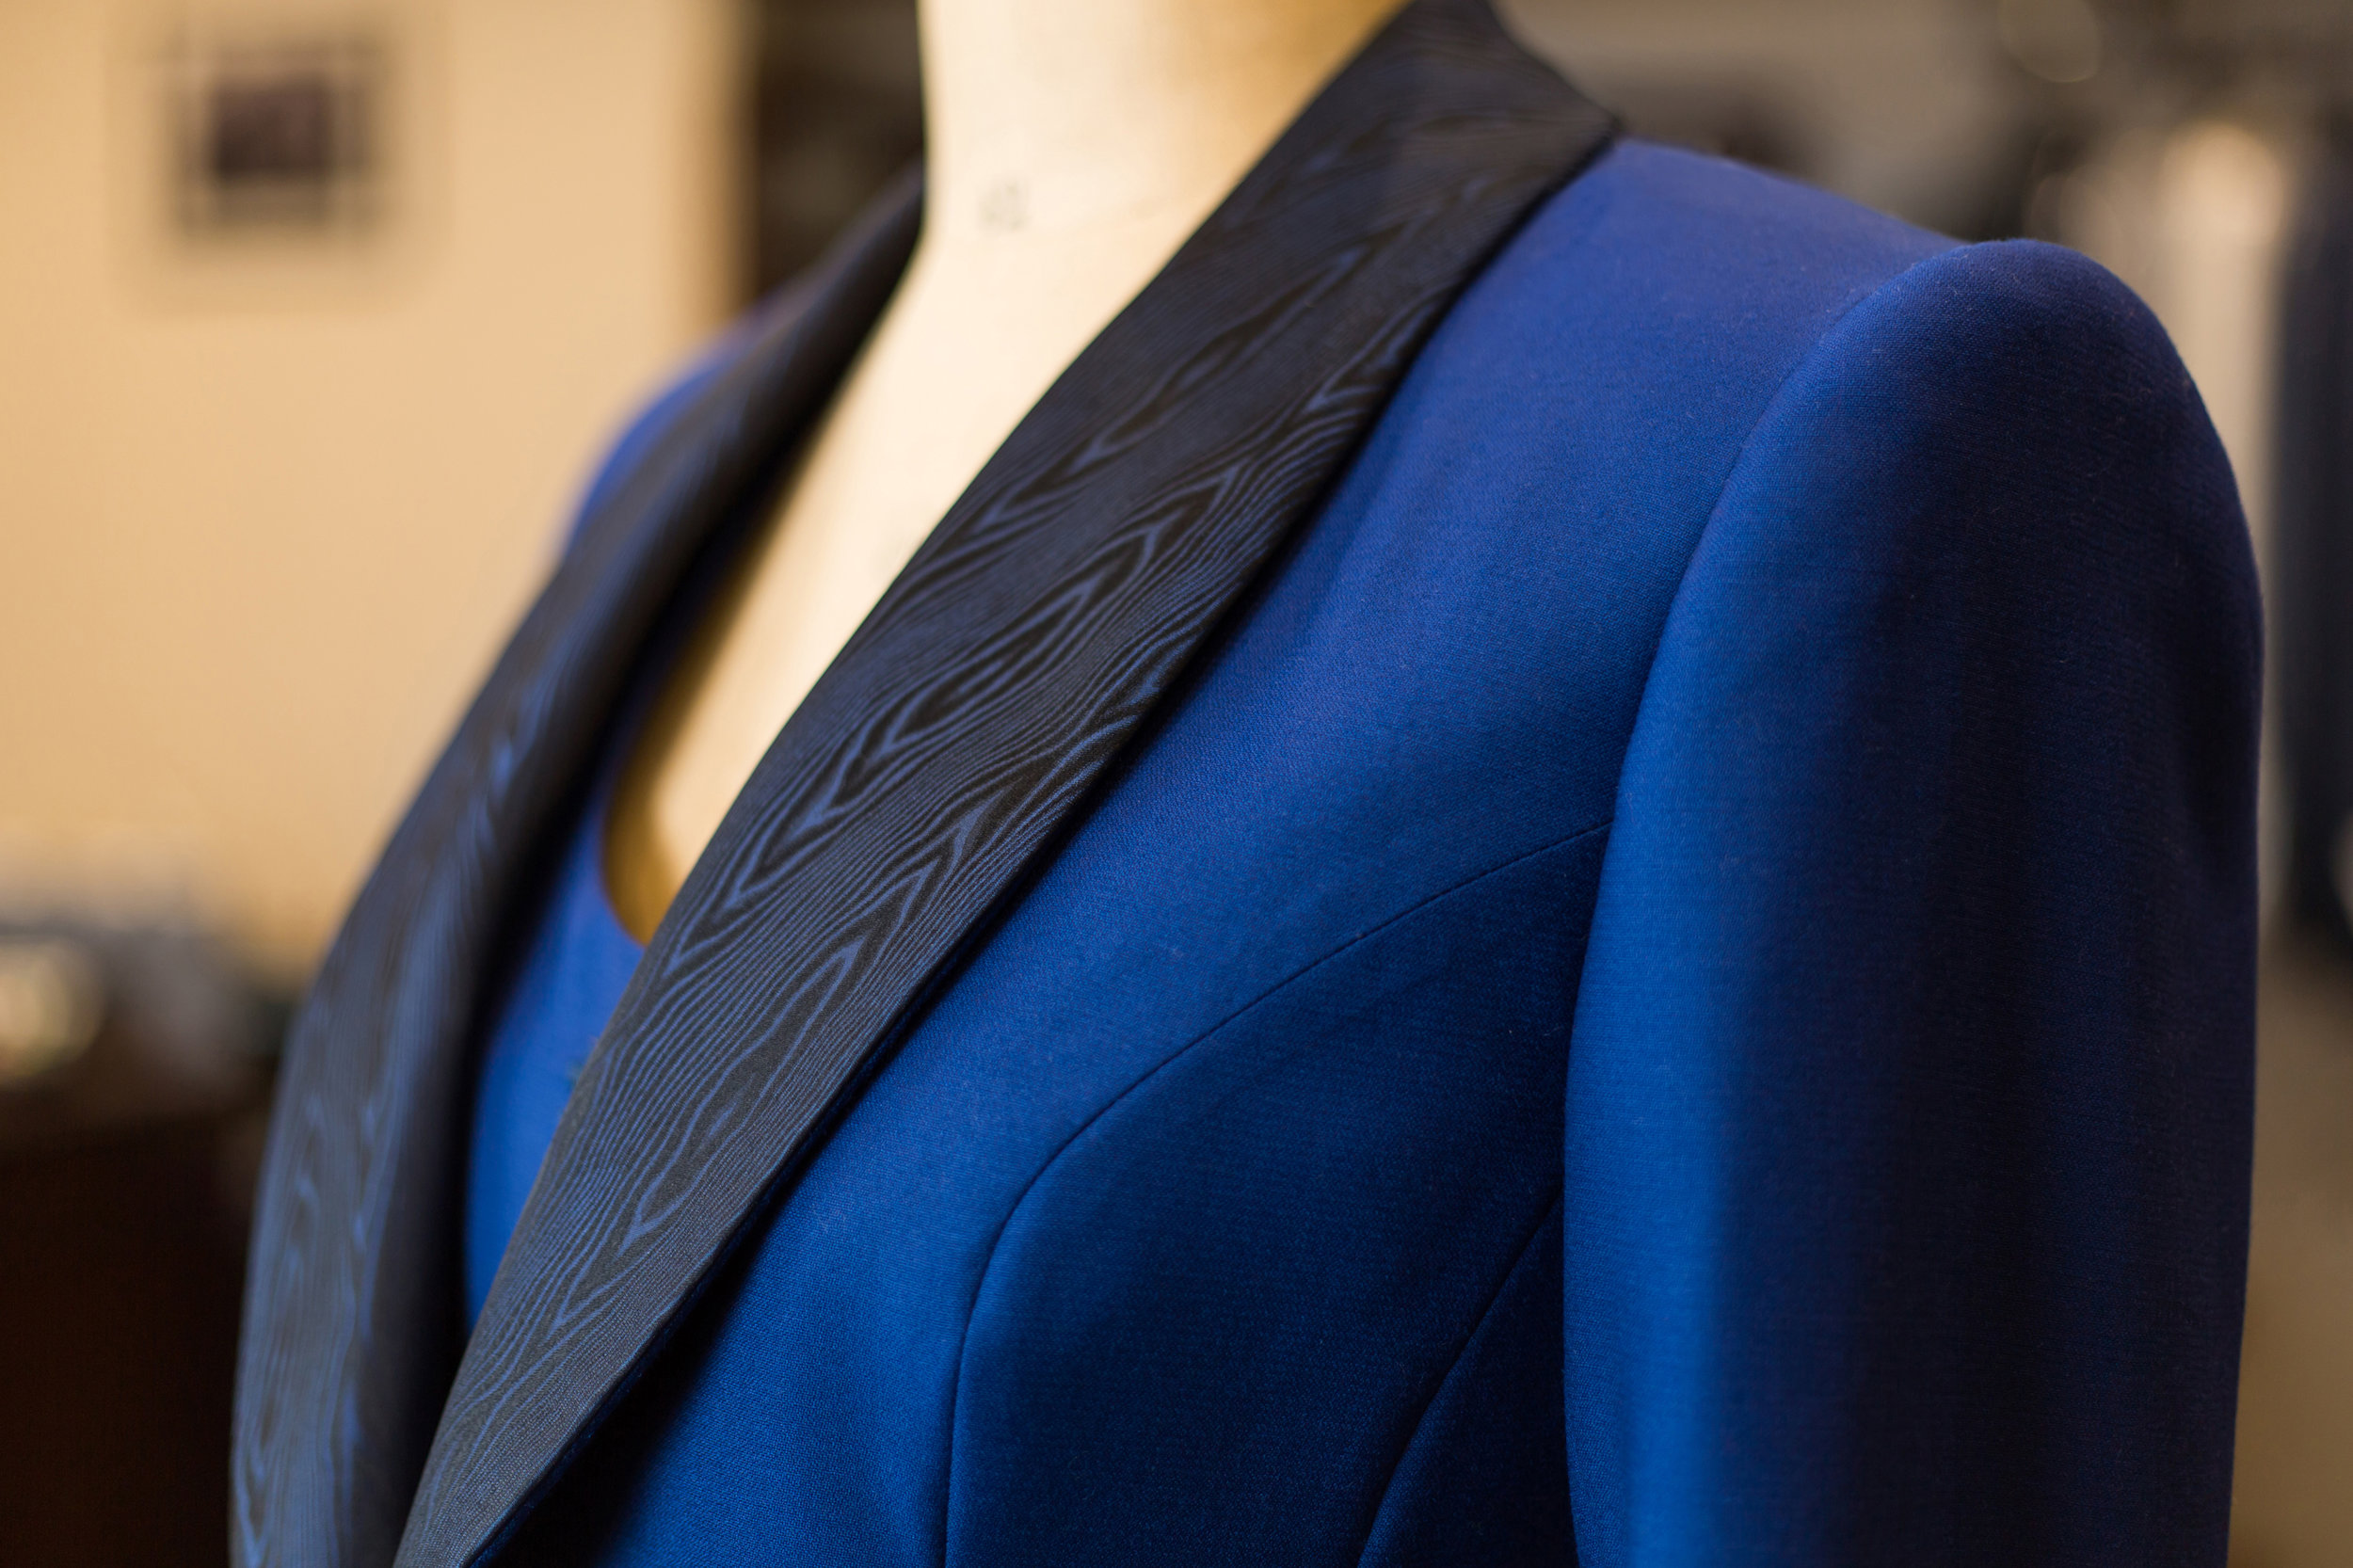 Examples of Ultra Bespoke Maurice Sedwell garments for women.